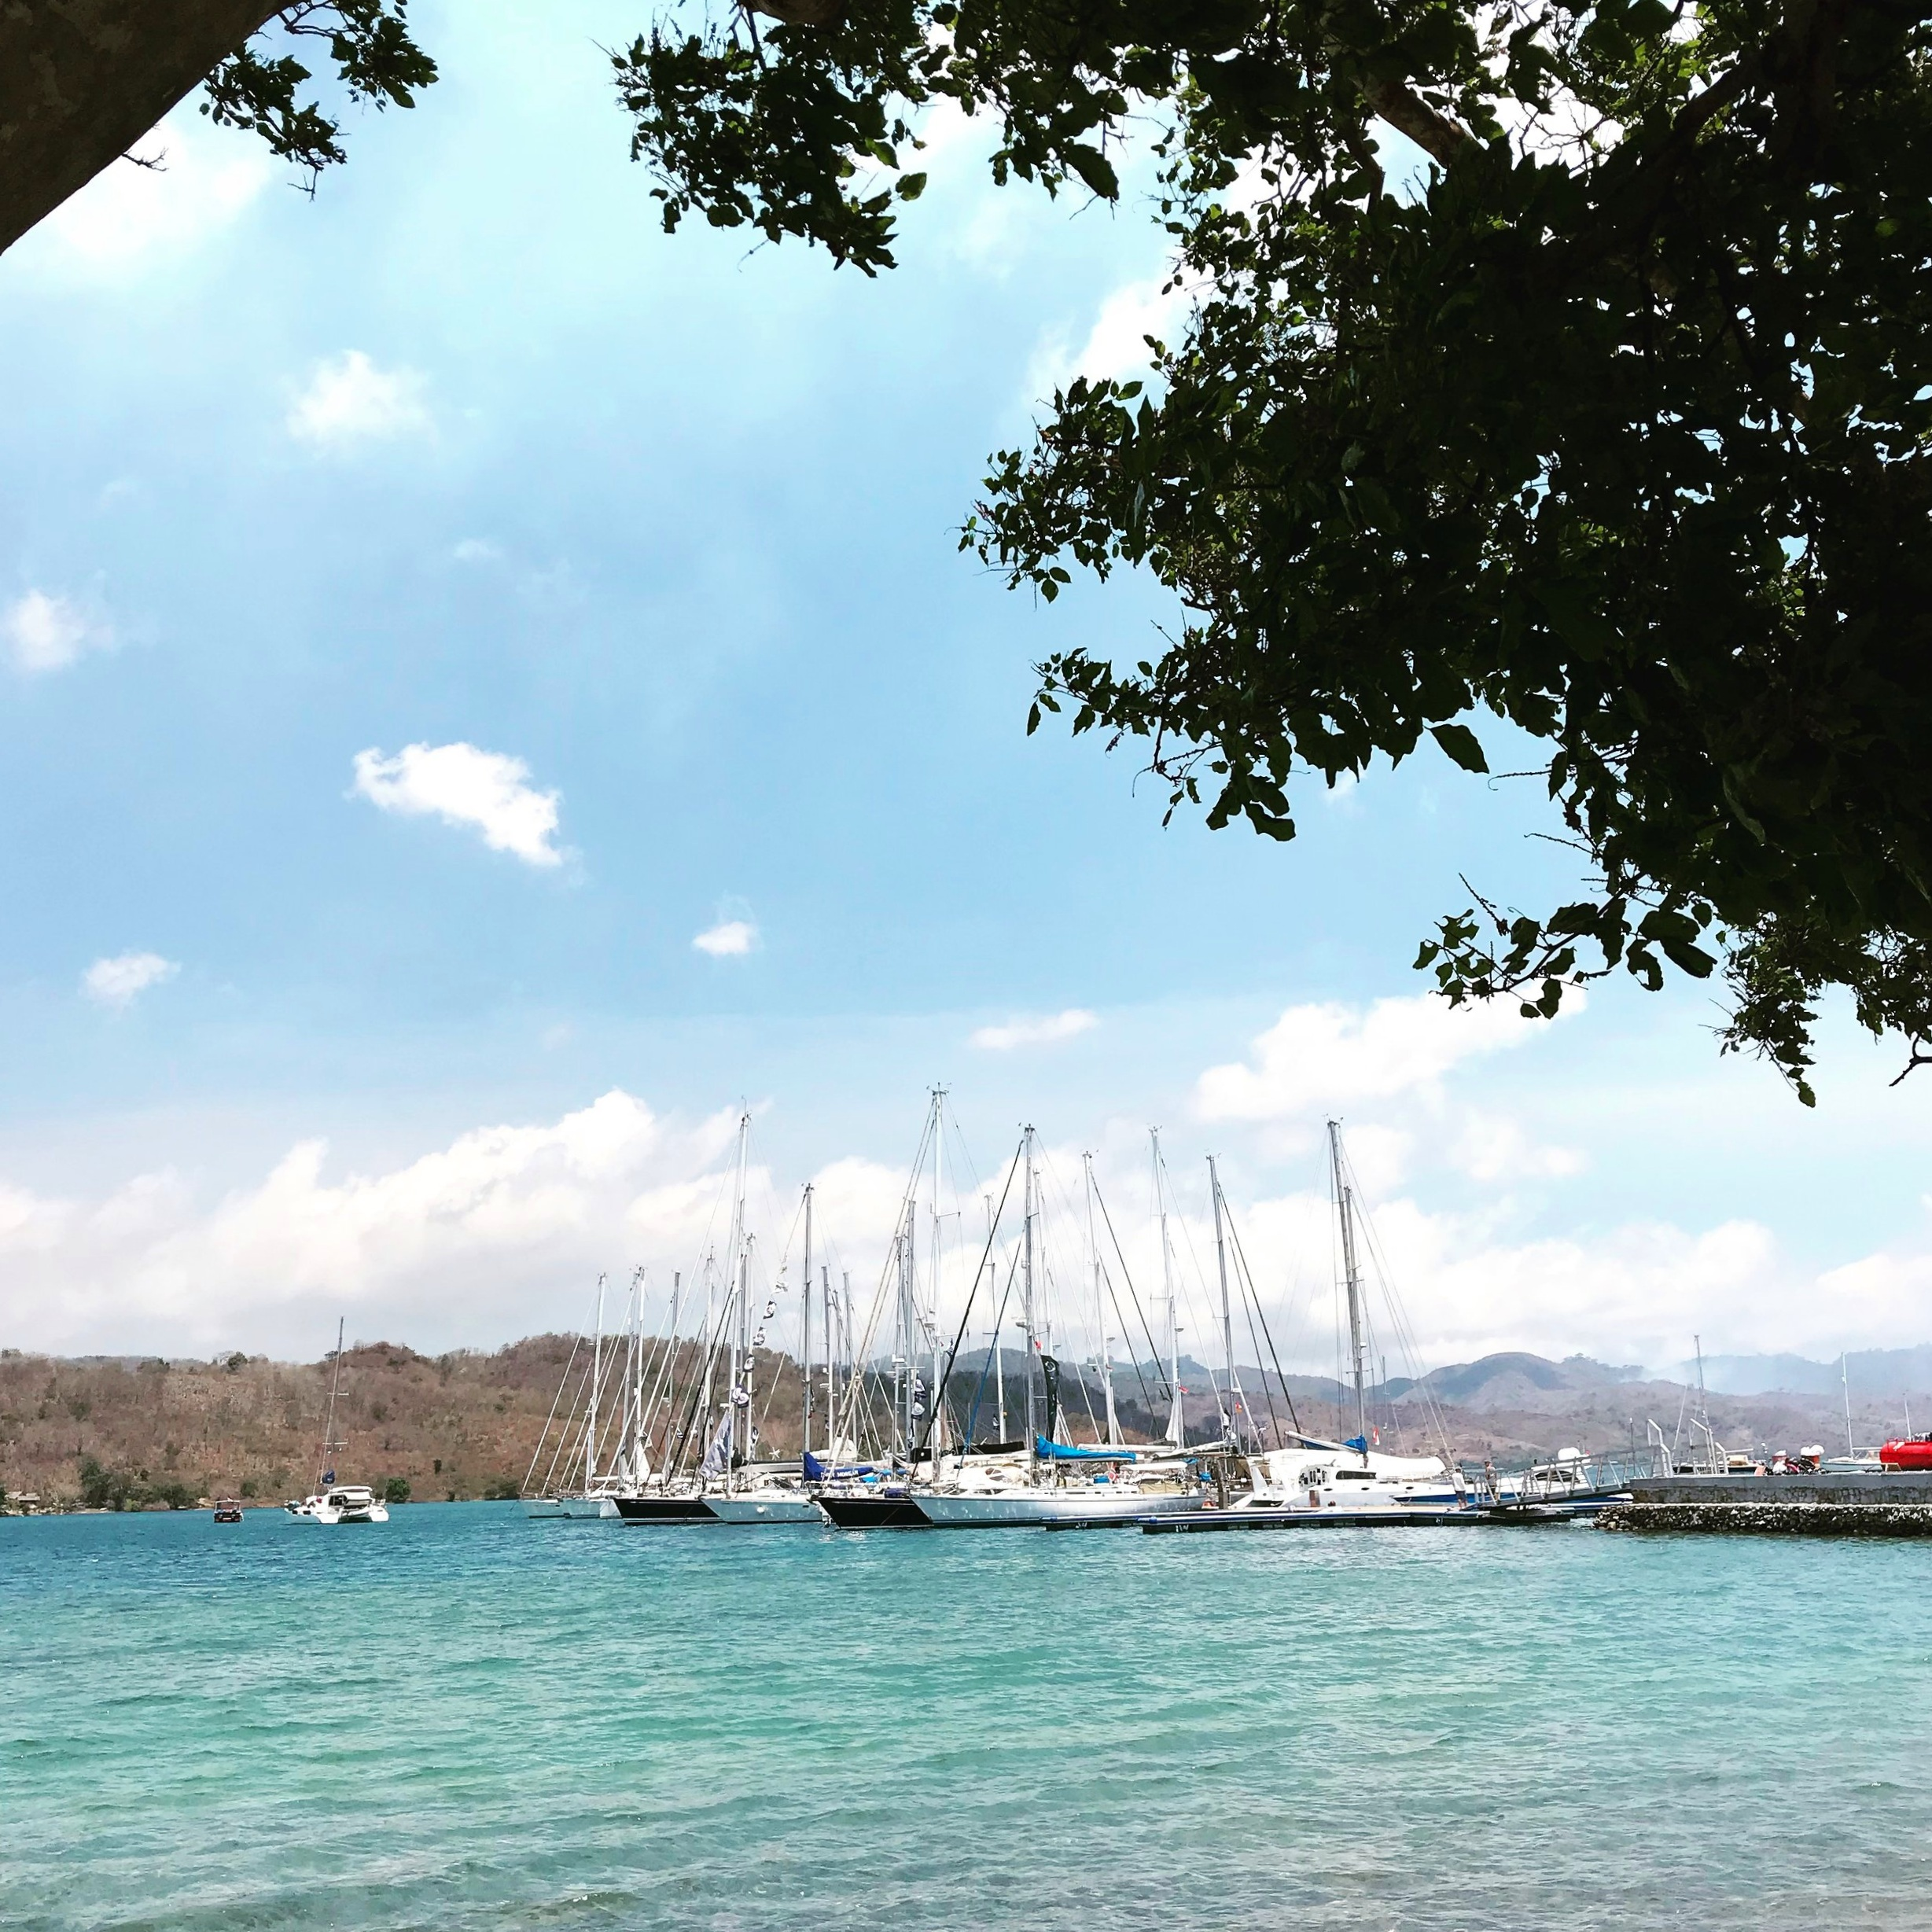 Yachts in the marina on Gili Gede